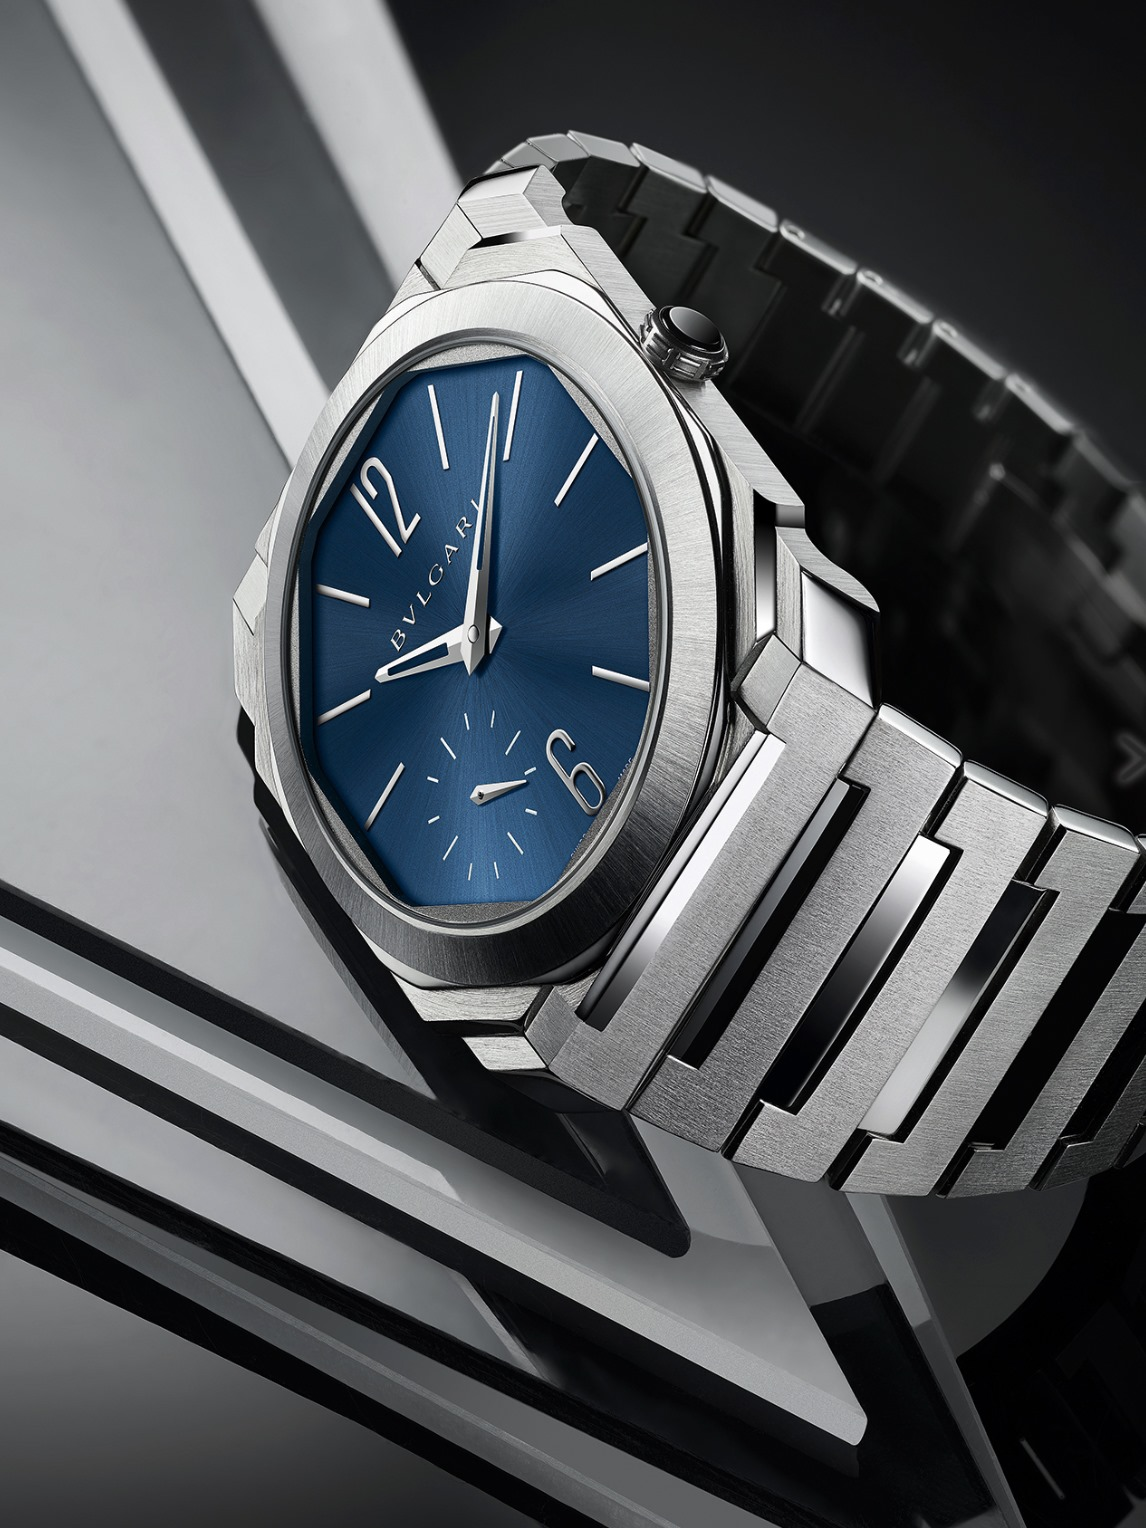 Bvlgari Octo Finissimo Automatic Steel Blue Dial-perfil